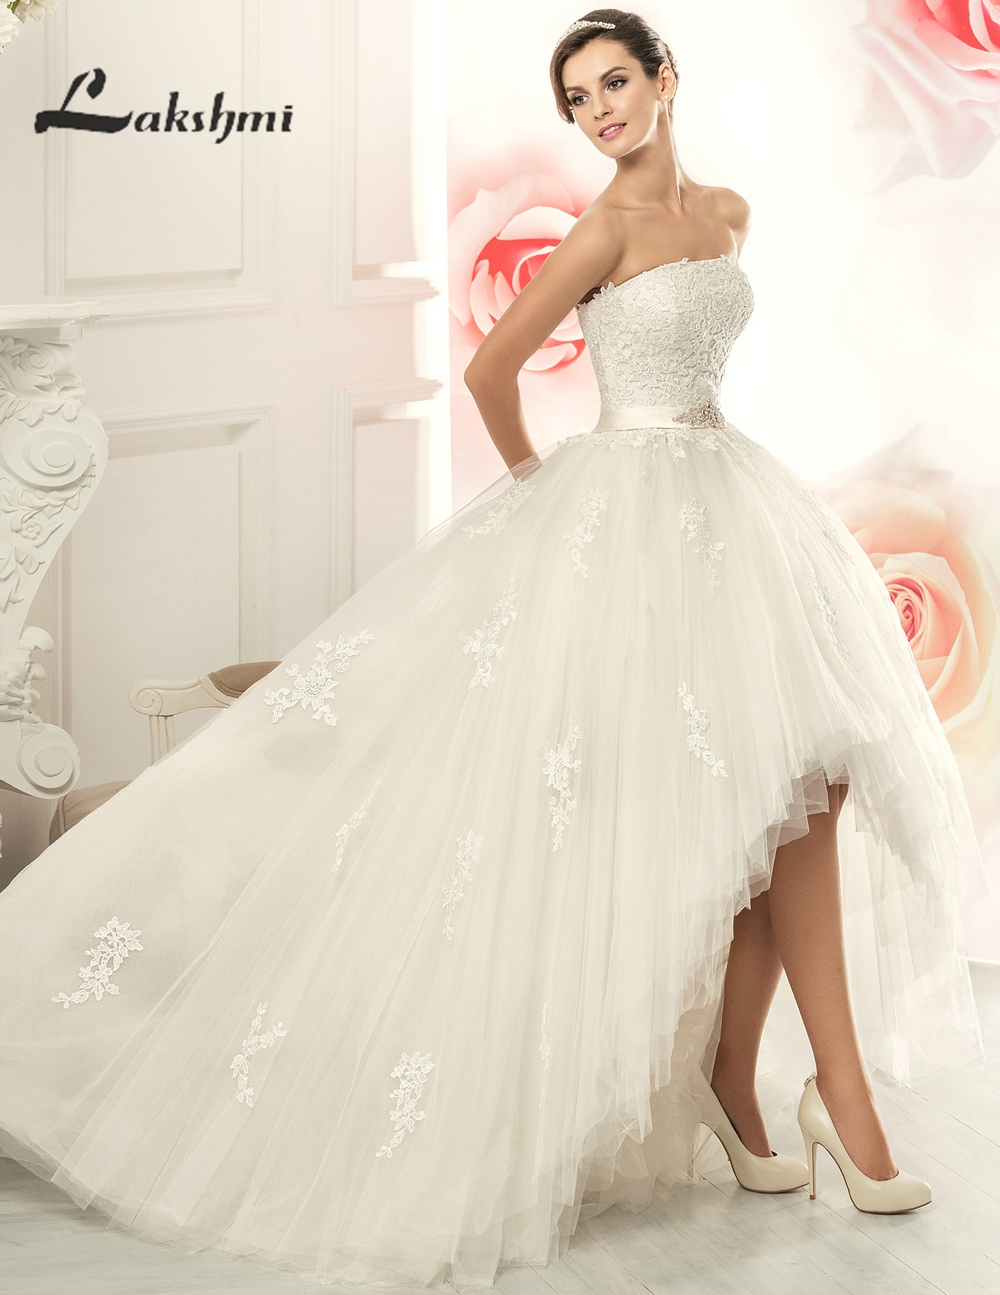 Wedding Gowns A Line Strapless : Made strapless detachable skirt wedding dresses princess a line